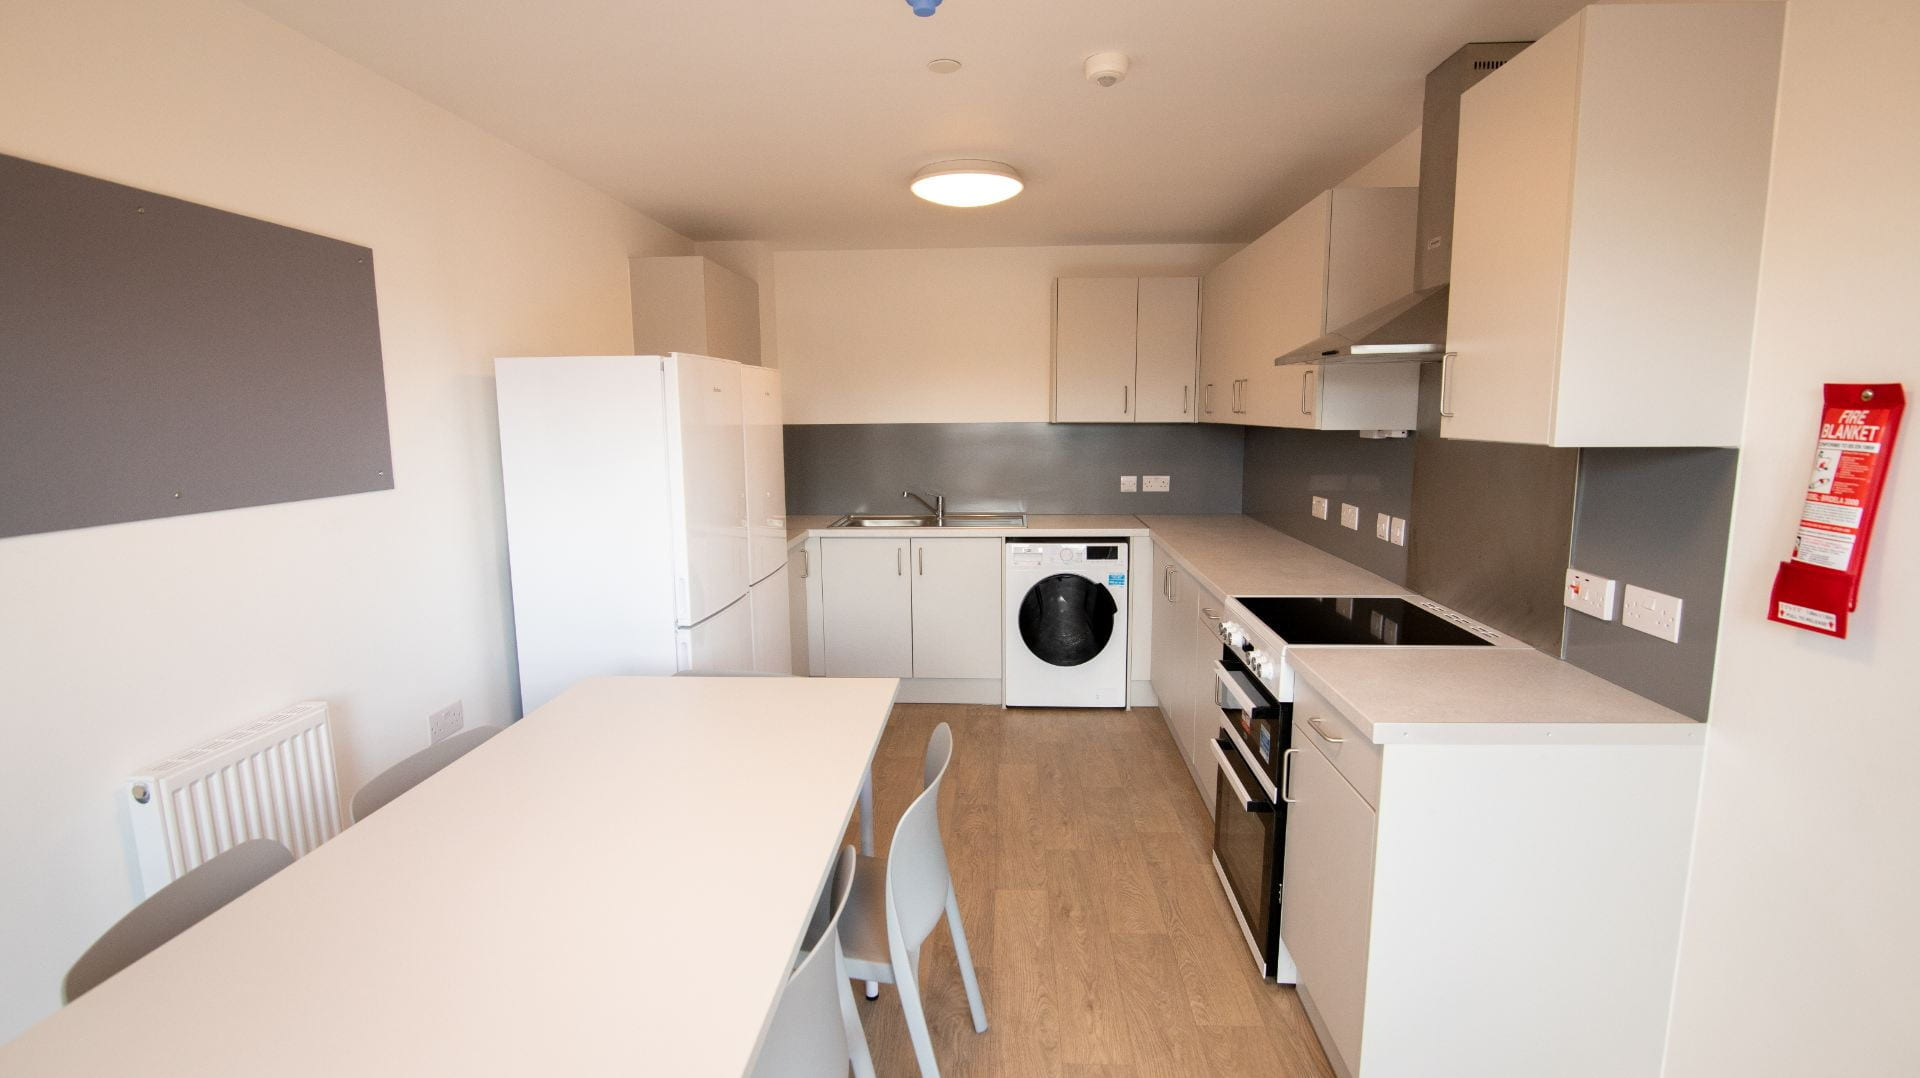 Valentine Court kitchen showing table and chairs, kitchen cupboards, fridge freezers, pin boards, oven and washing machine.